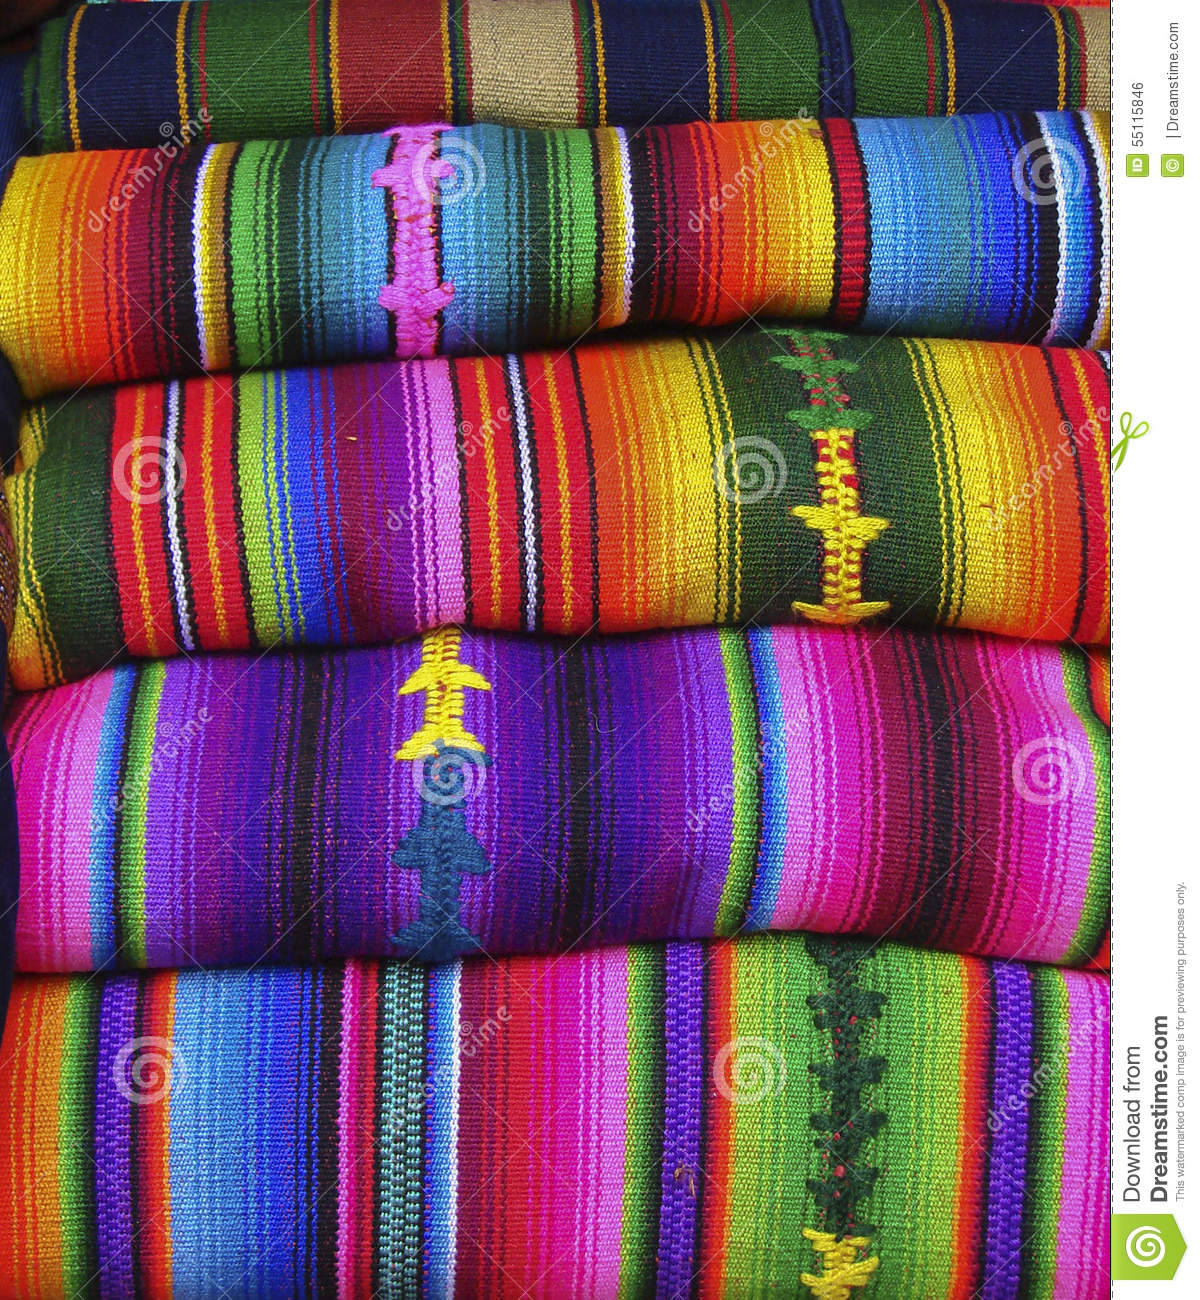 colorful blankets at a guatemalan market stock photo  image  - america blankets central chichicastenango colorful